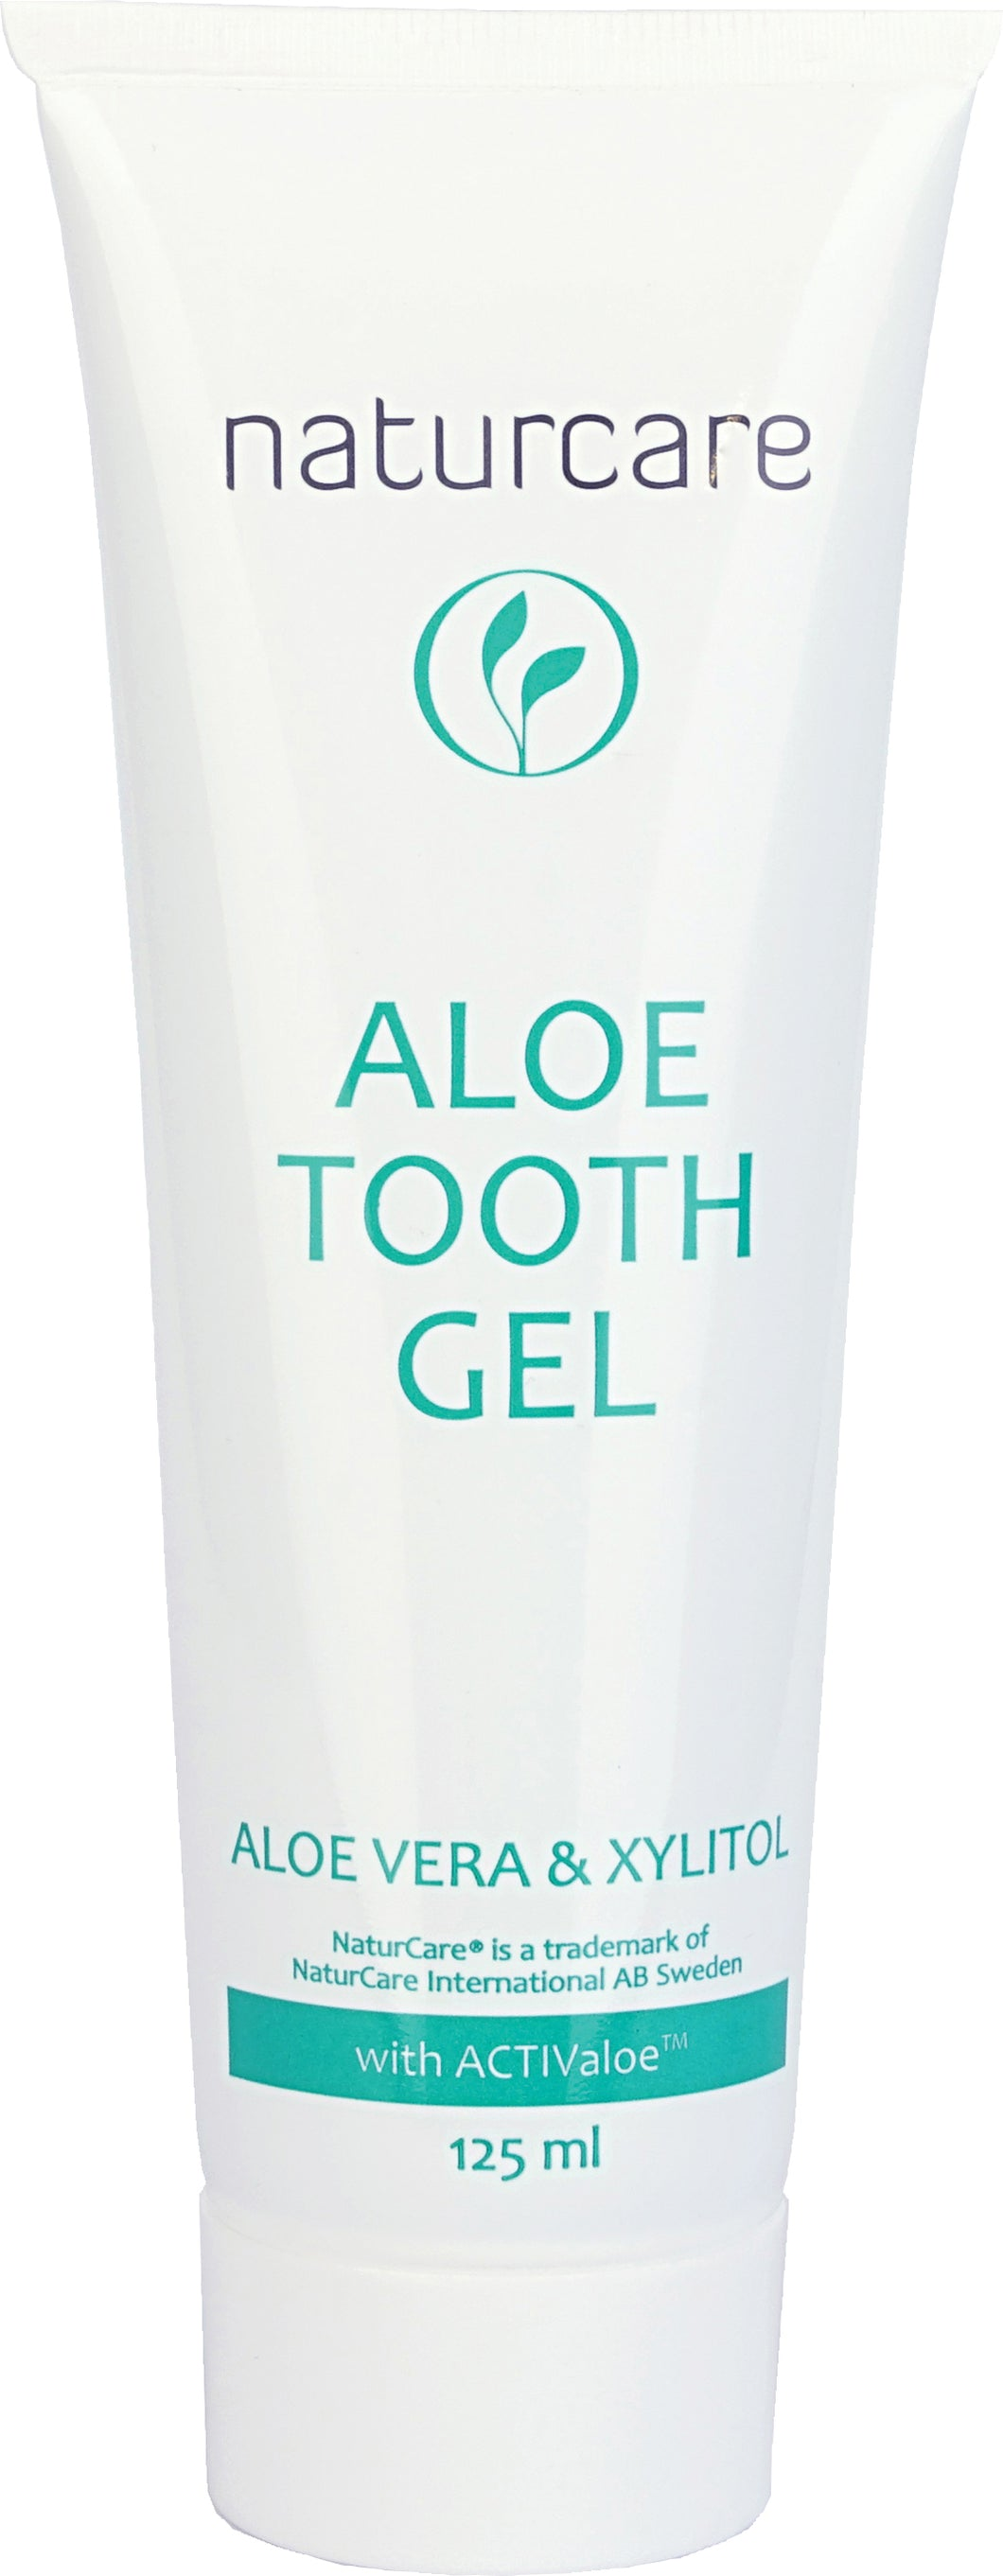 2x ALOE ZAHNGEL 125ml + 1 DENTAL WASH 250ml gratis